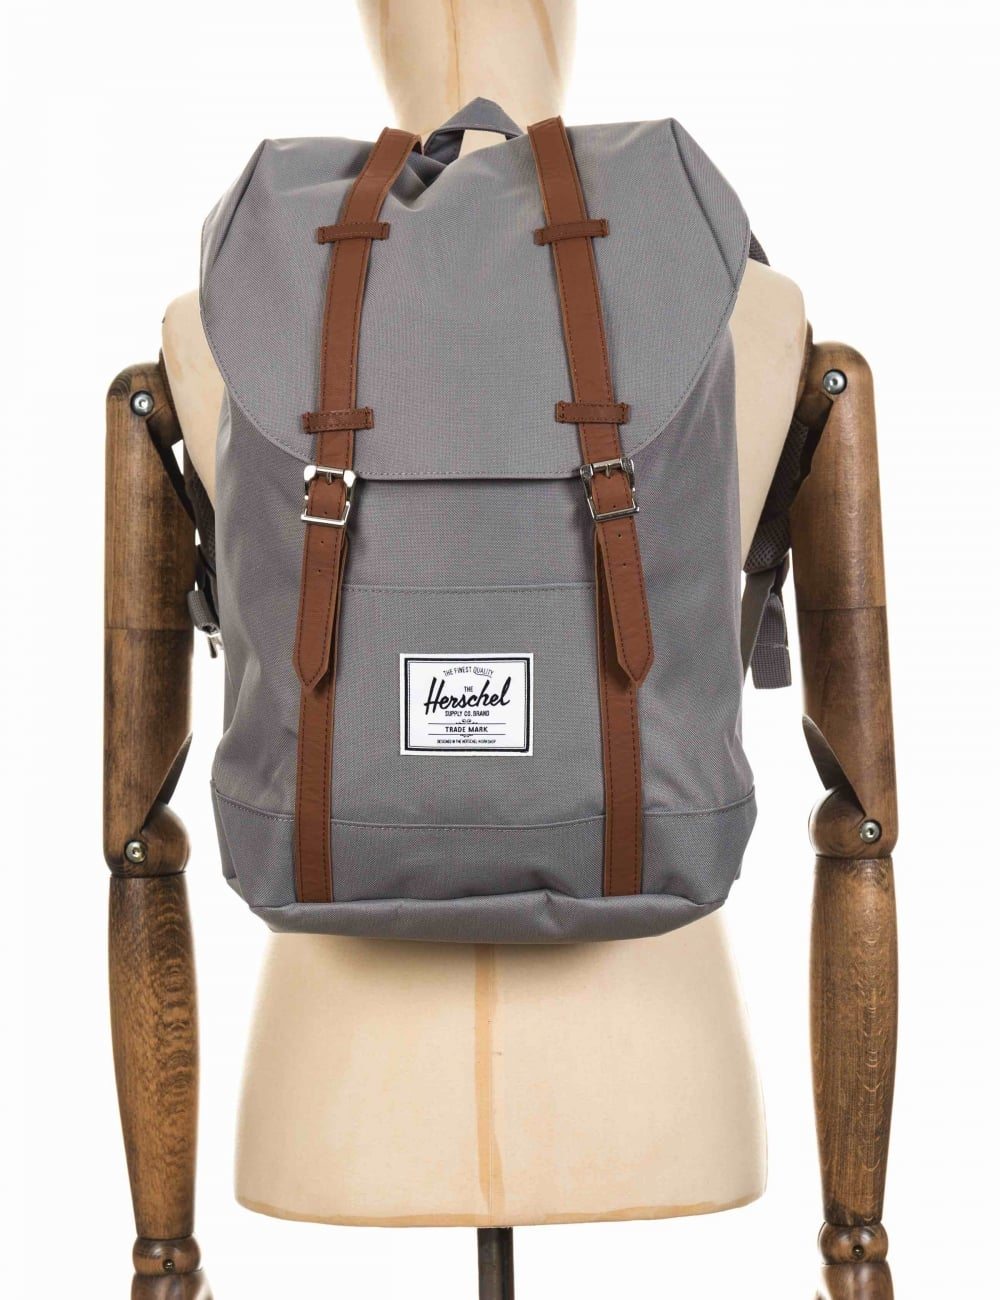 3b6b0828ba9b Herschel Supply Co Retreat 19.5L Backpack - Grey Tan - Accessories ...